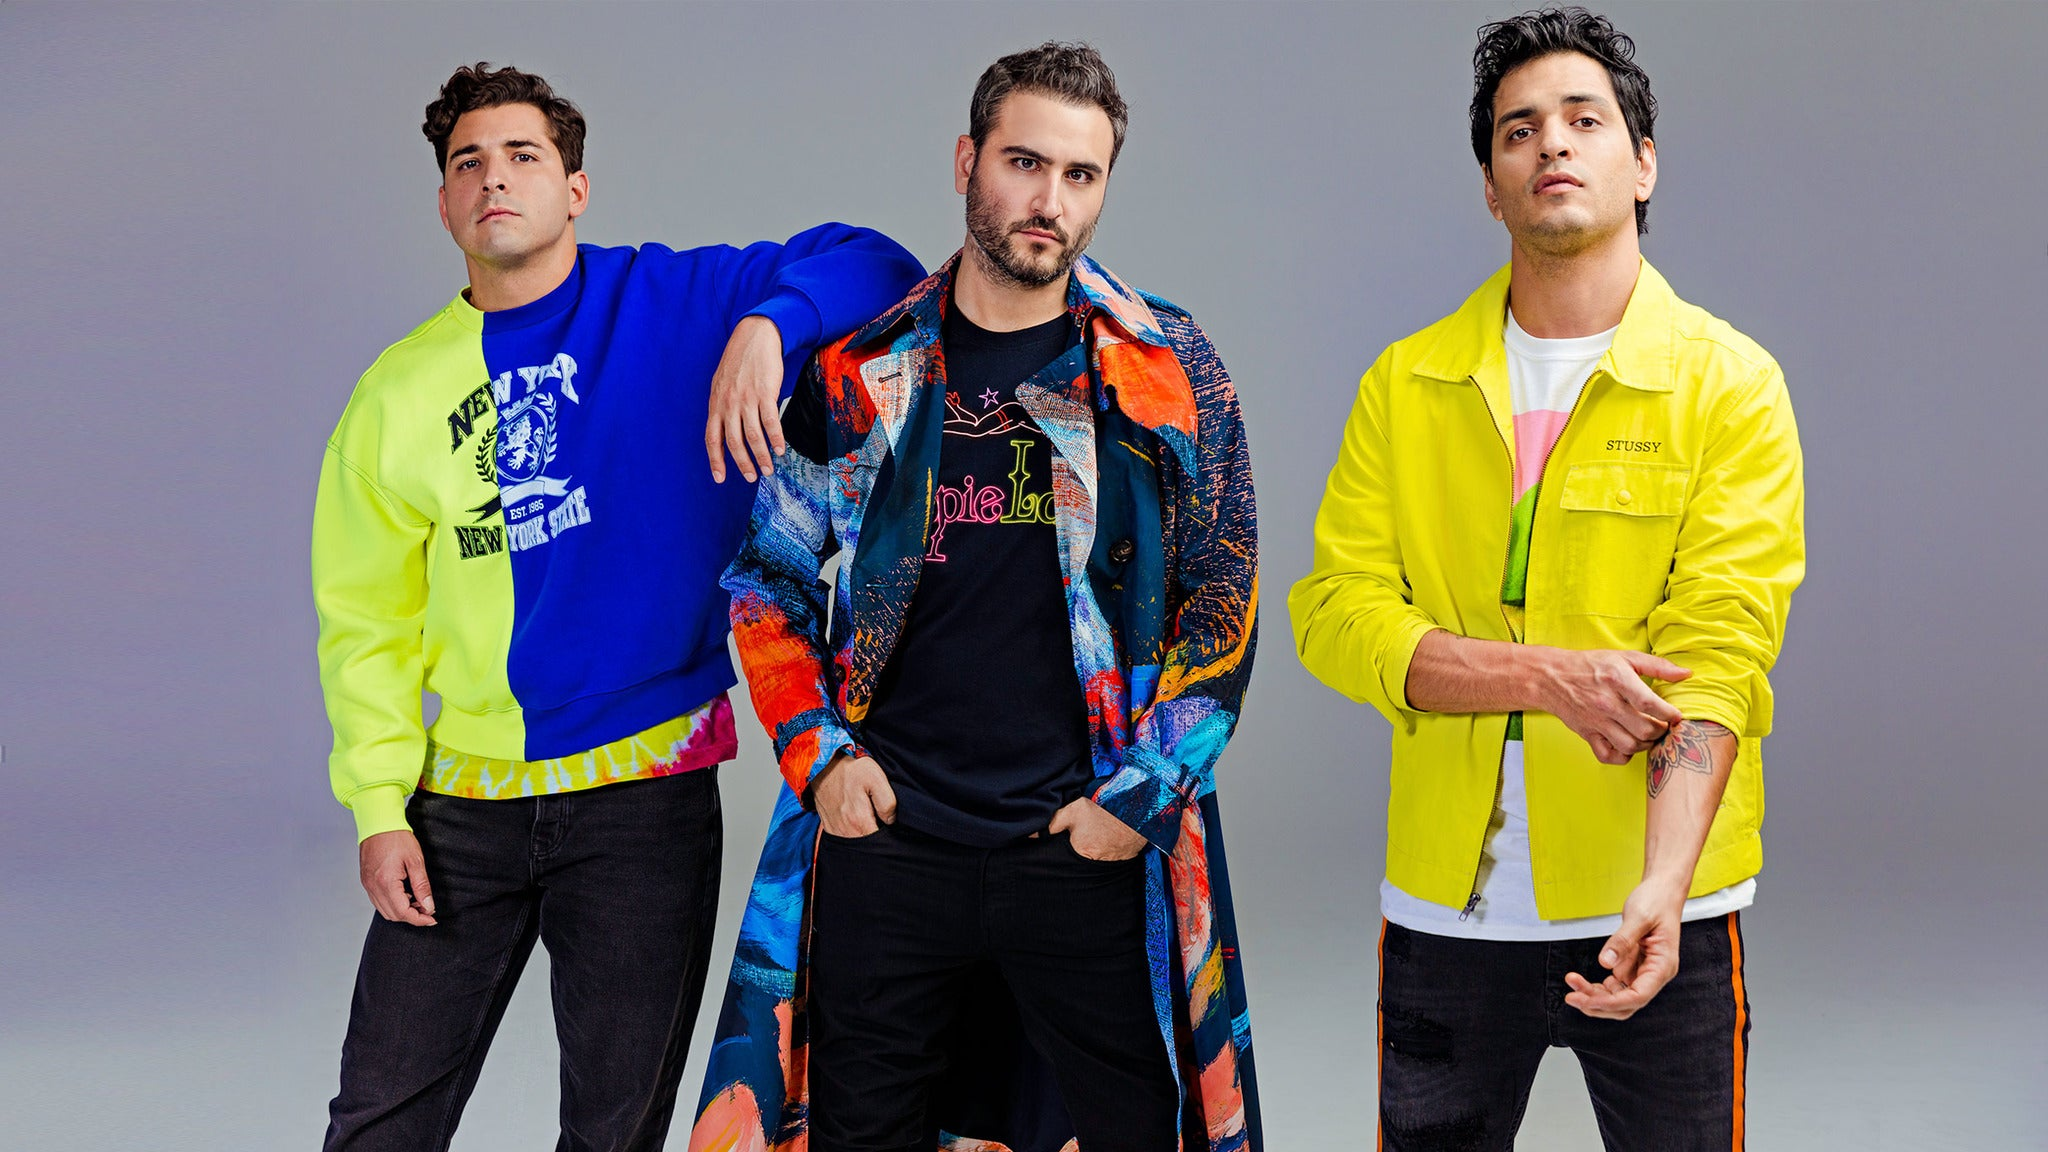 Reik at Sames Auto Arena